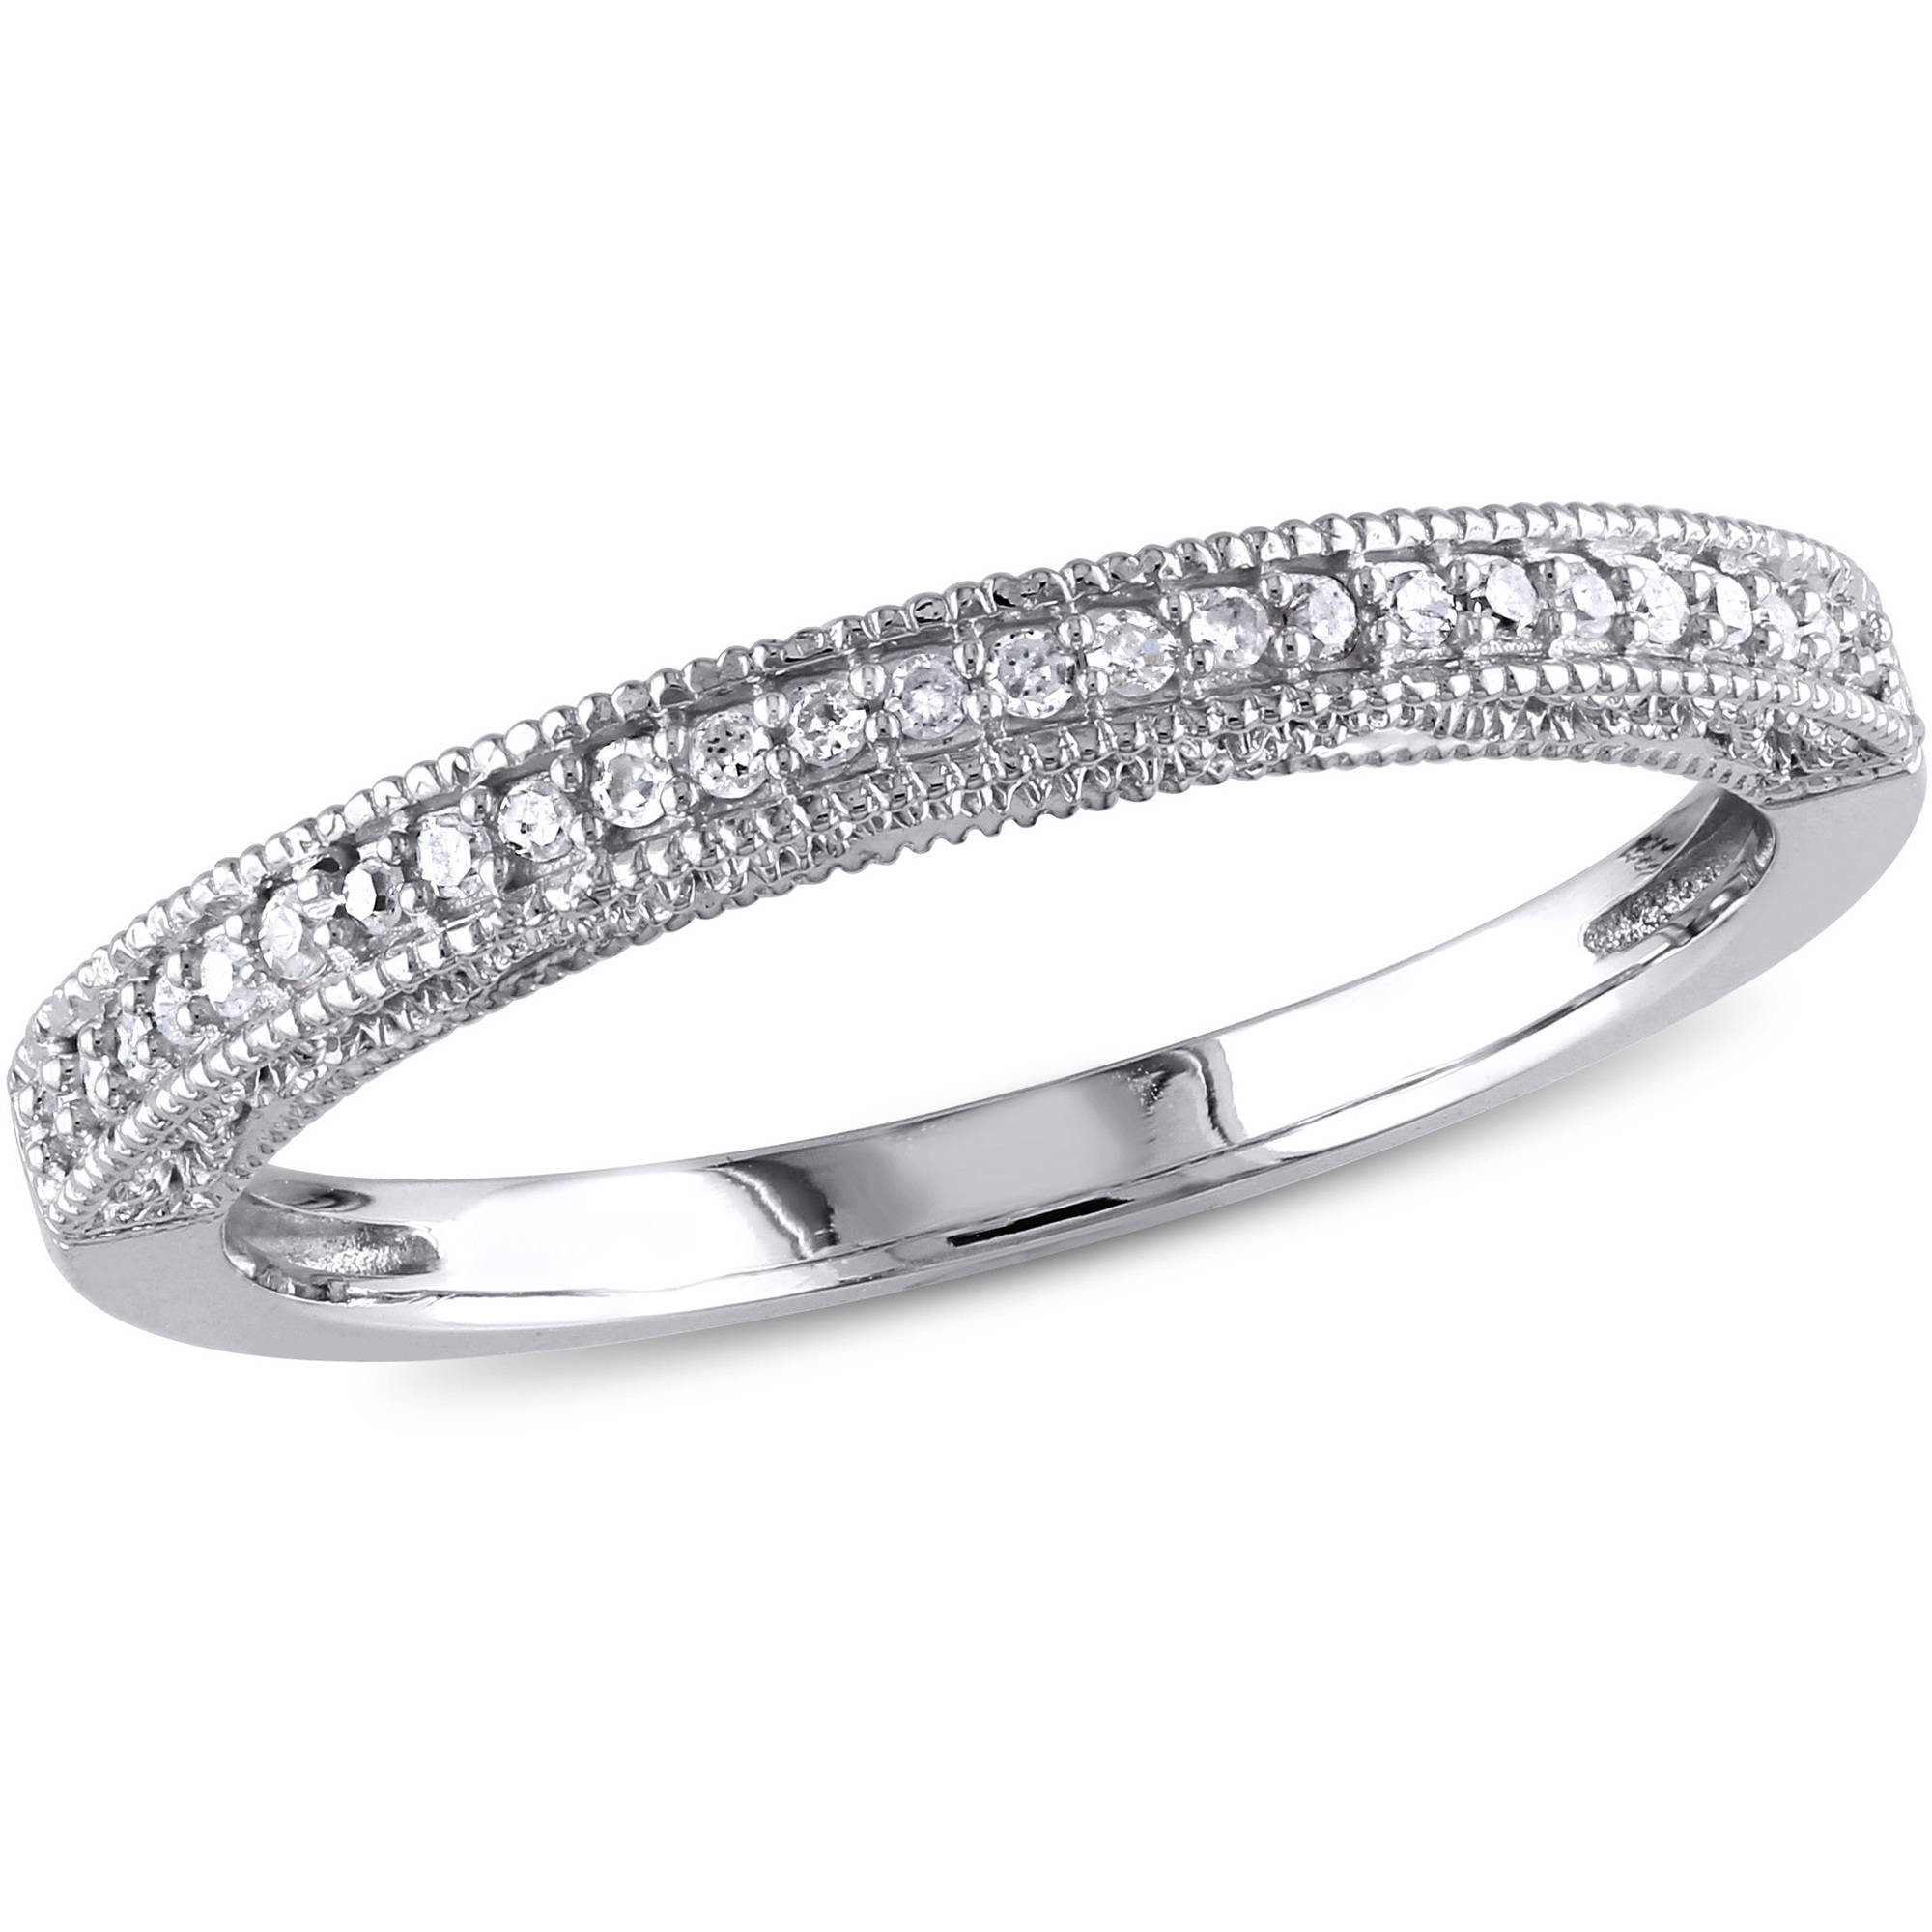 Miabella 1/10 Carat T.W. Diamond 10kt White Gold Wedding Band